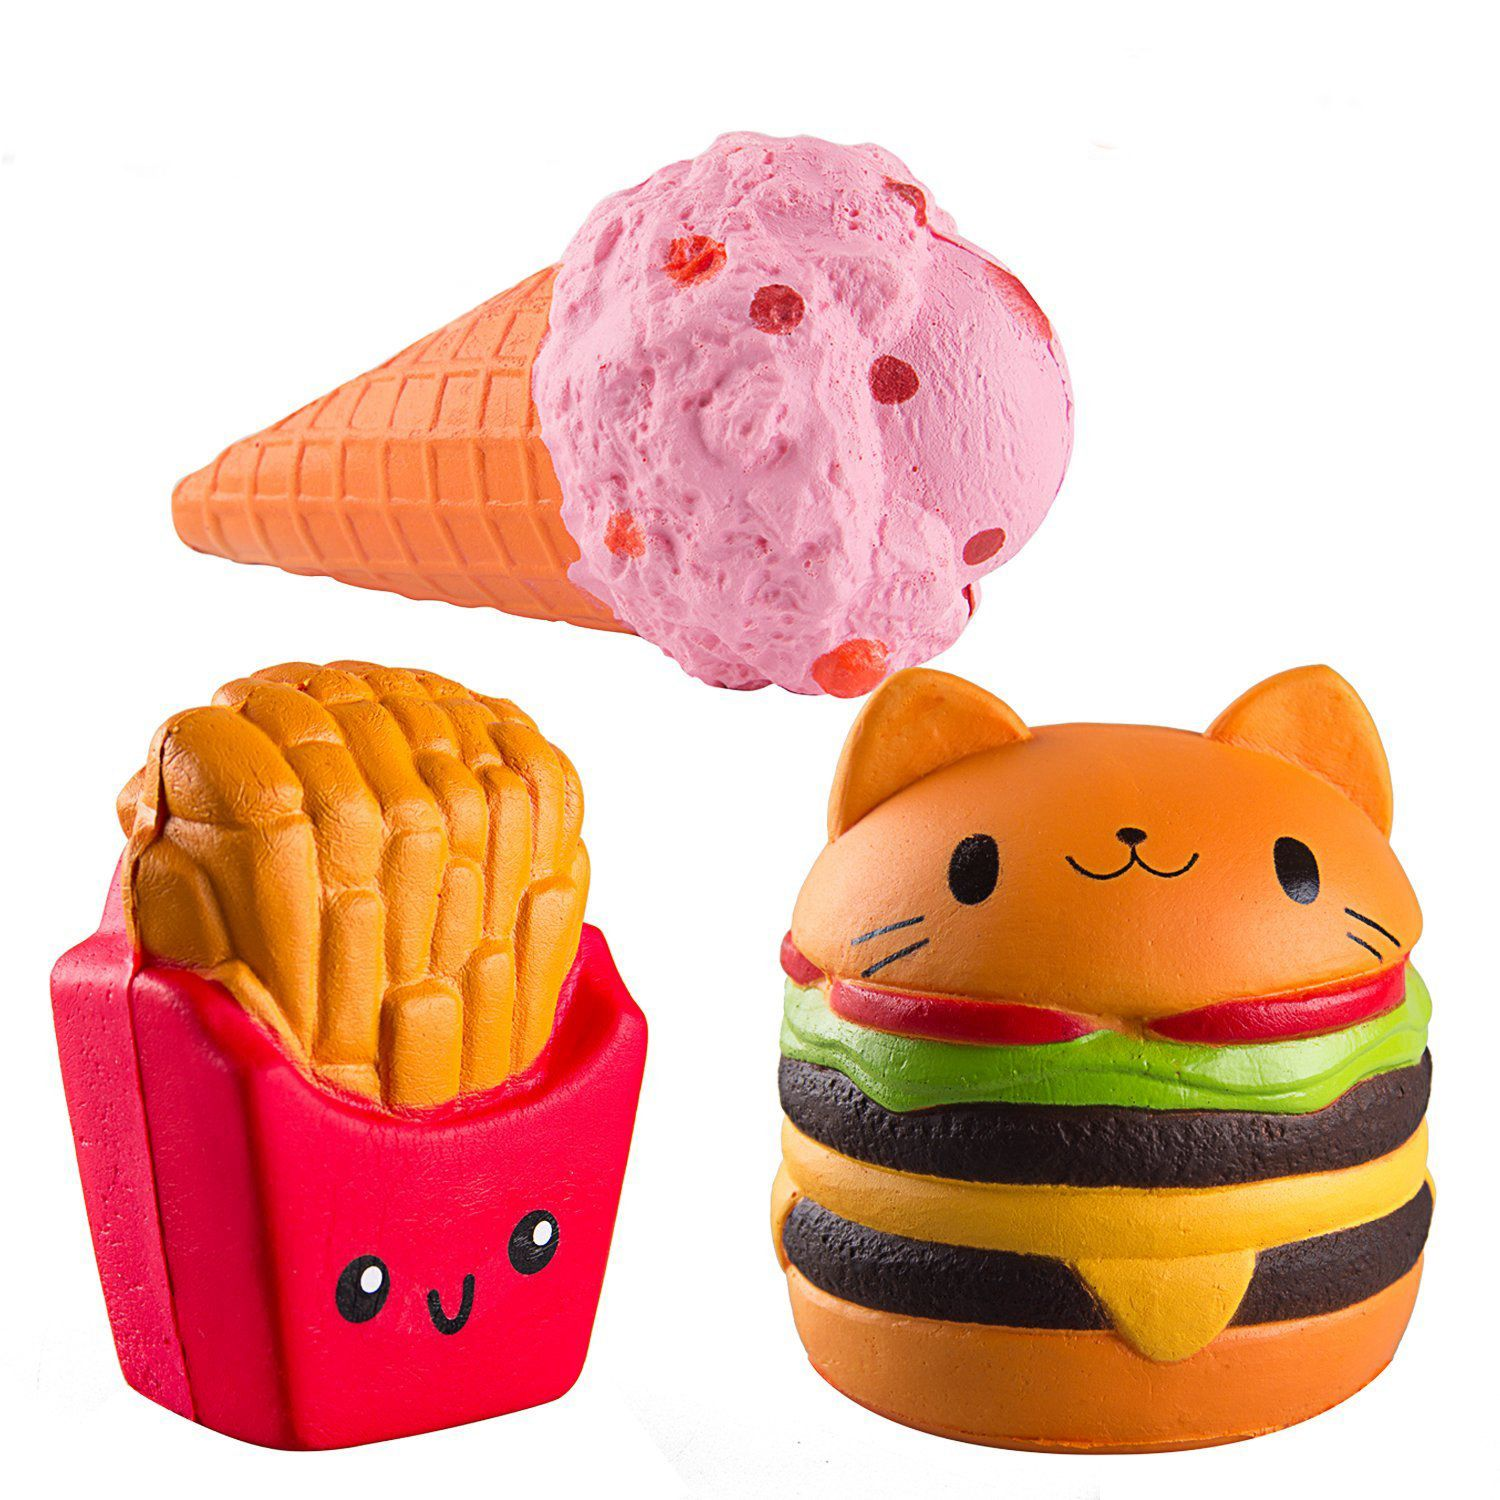 FBIL-Kawaii Jumbo hamburger fries set Squishy Slow Rising Sweet Scented Vent Charms Kid Toy Hand Toy, Stress Relief Toy jumbo squishy cute glasses bear scented charm super slow rising squeeze toy